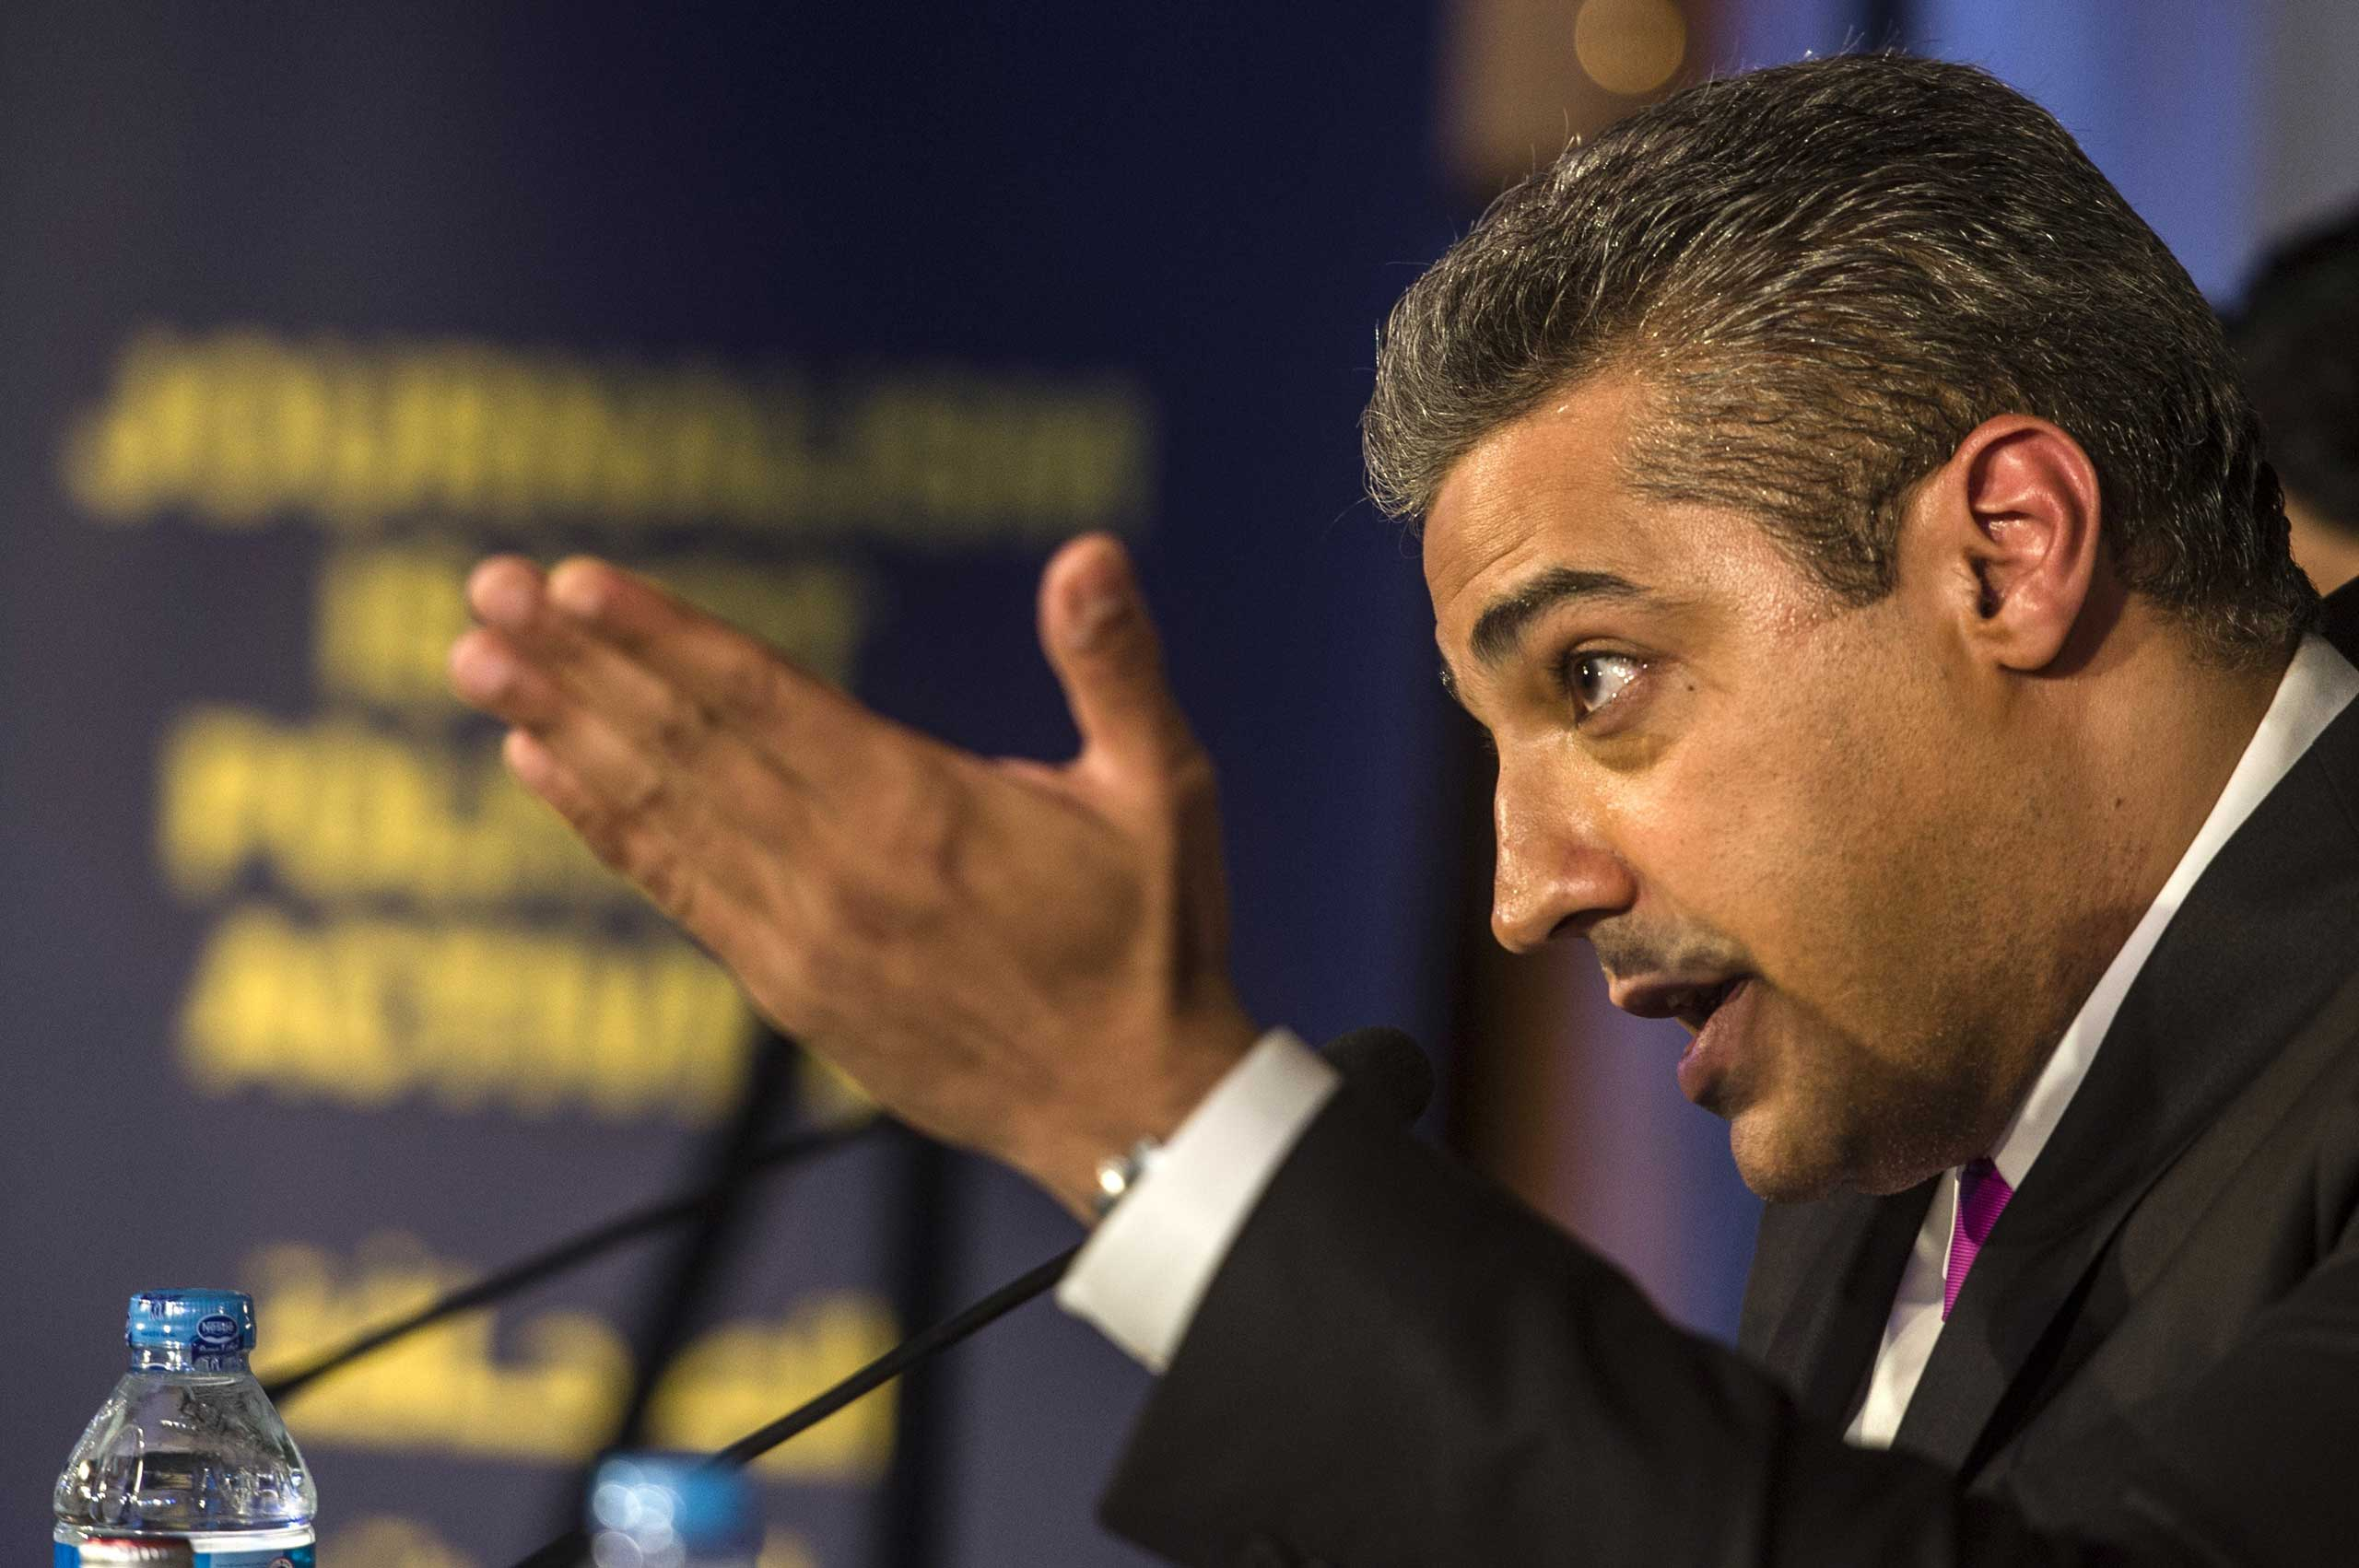 Egyptian-Canadian journalist Mohamed Fahmy, formerly with Al-Jazeera, attends a press conference in Cairo on May 11, 2015.